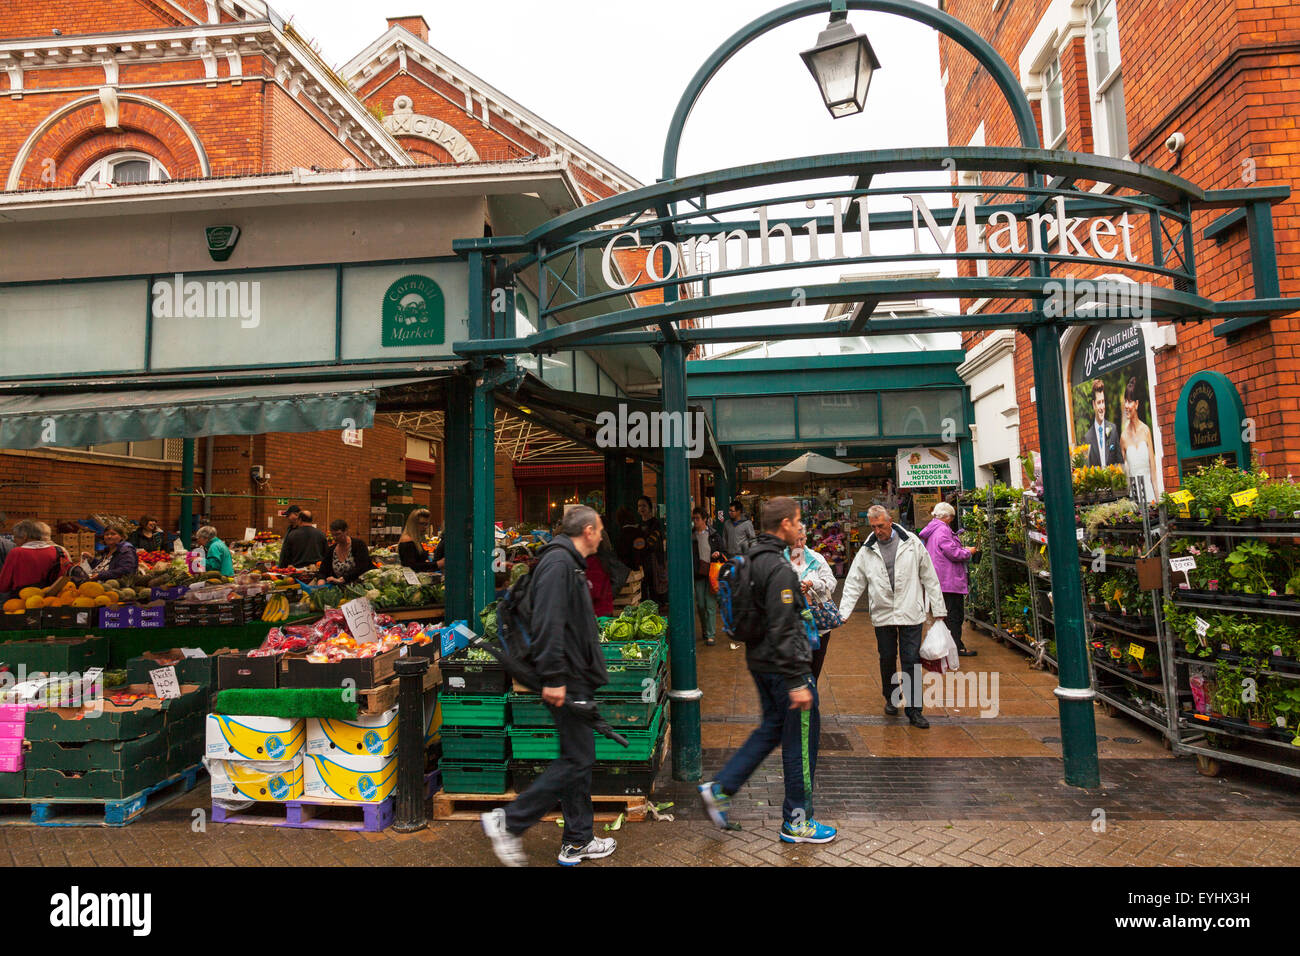 Cornhill market Lincoln City stalls traders selling goods from stall flowers fruit veg vegetables Lincolnshire UK - Stock Image